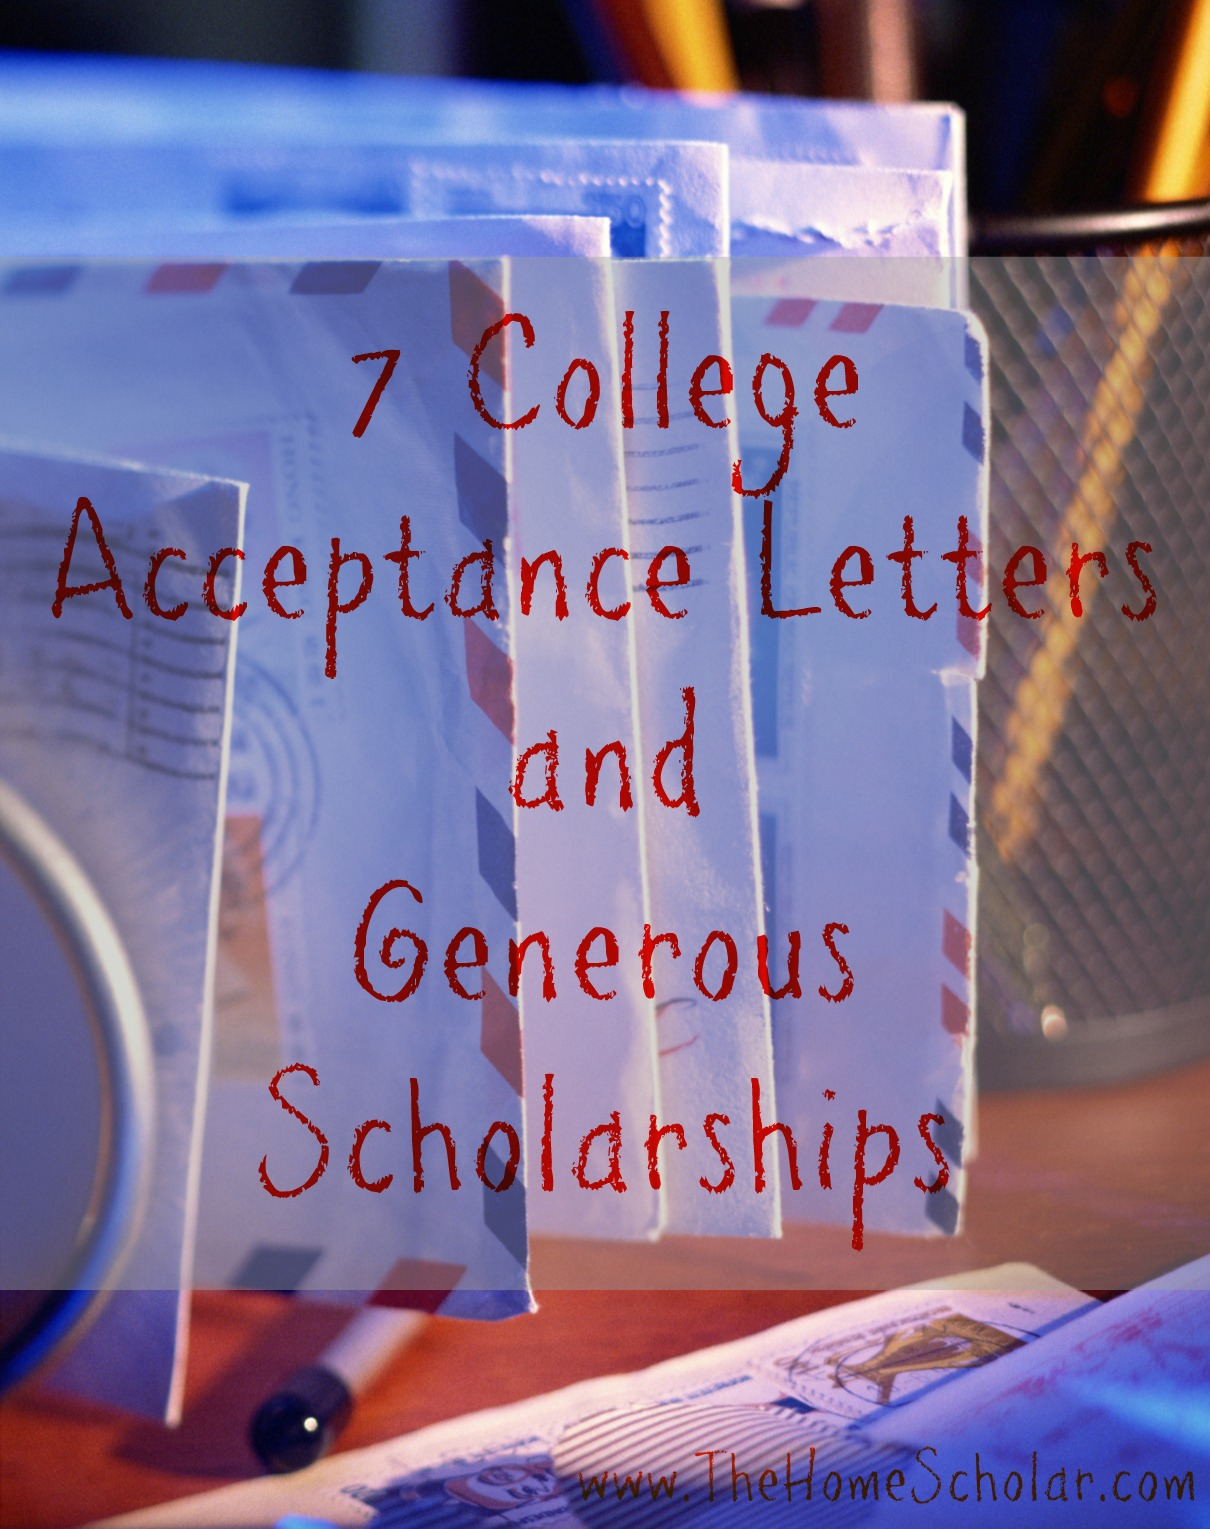 #7 College Acceptance Letters and Generous Scholarships @TheHomeScholar